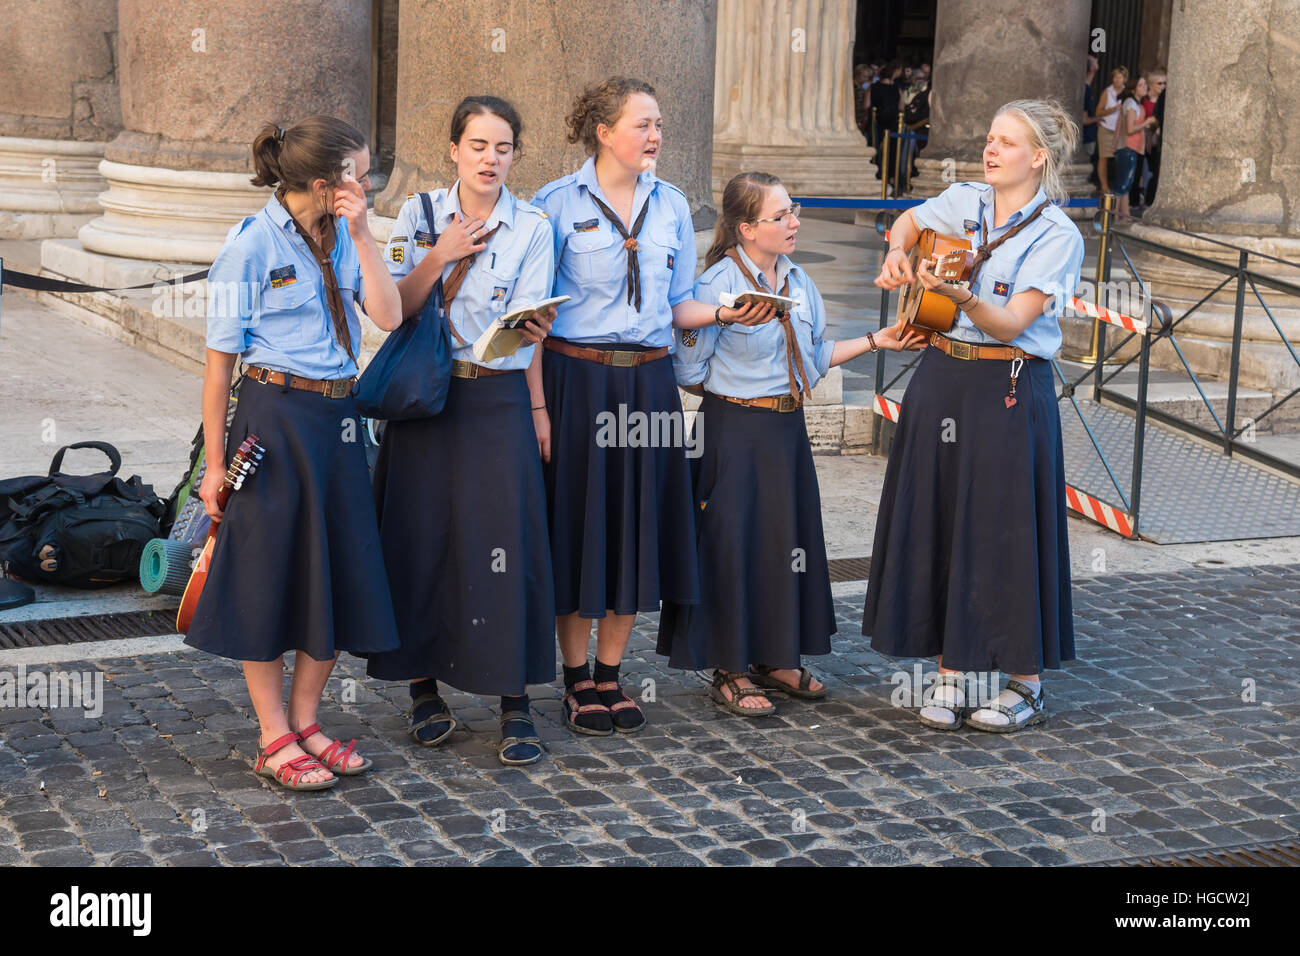 A group of girls in uniform singing religious songs from the pantheon columns, Rome,  capital of Italy and  Lazio - Stock Image